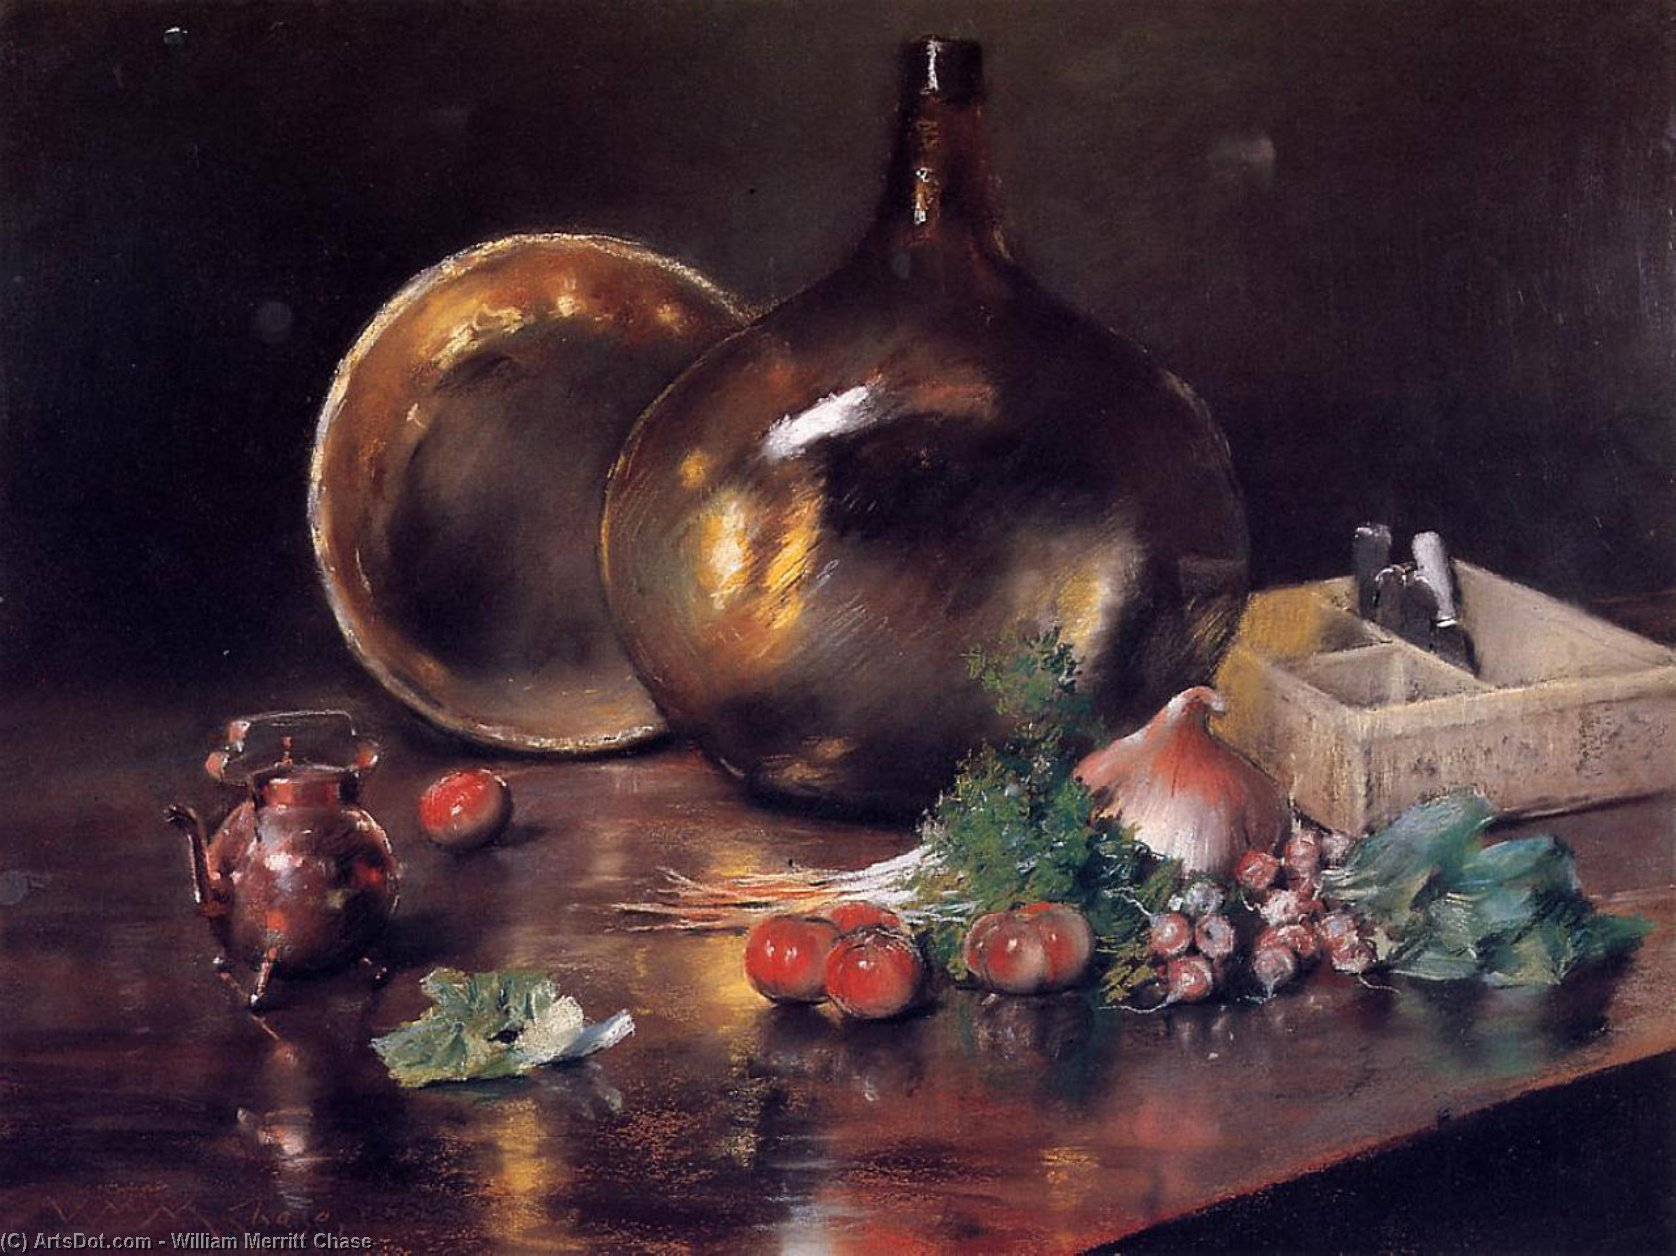 Stilleben -   messing  und  glas , pastell von William Merritt Chase (1849-1916, United States)